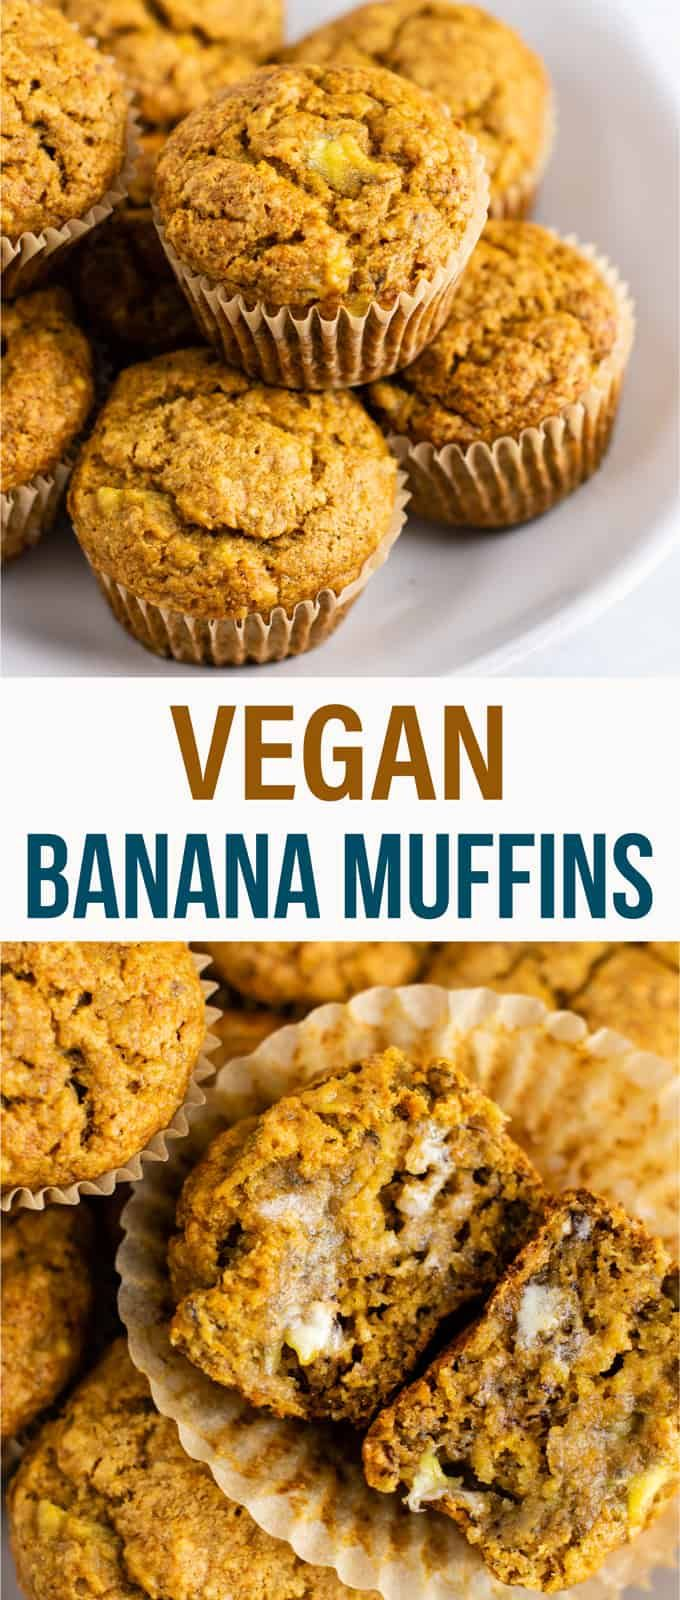 Healthy And Easy Vegan Banana Muffins Recipe With Applesauce These Are Amazing And Totally Oi Vegan Banana Muffins Banana Muffin Recipe Vegan Muffins Healthy